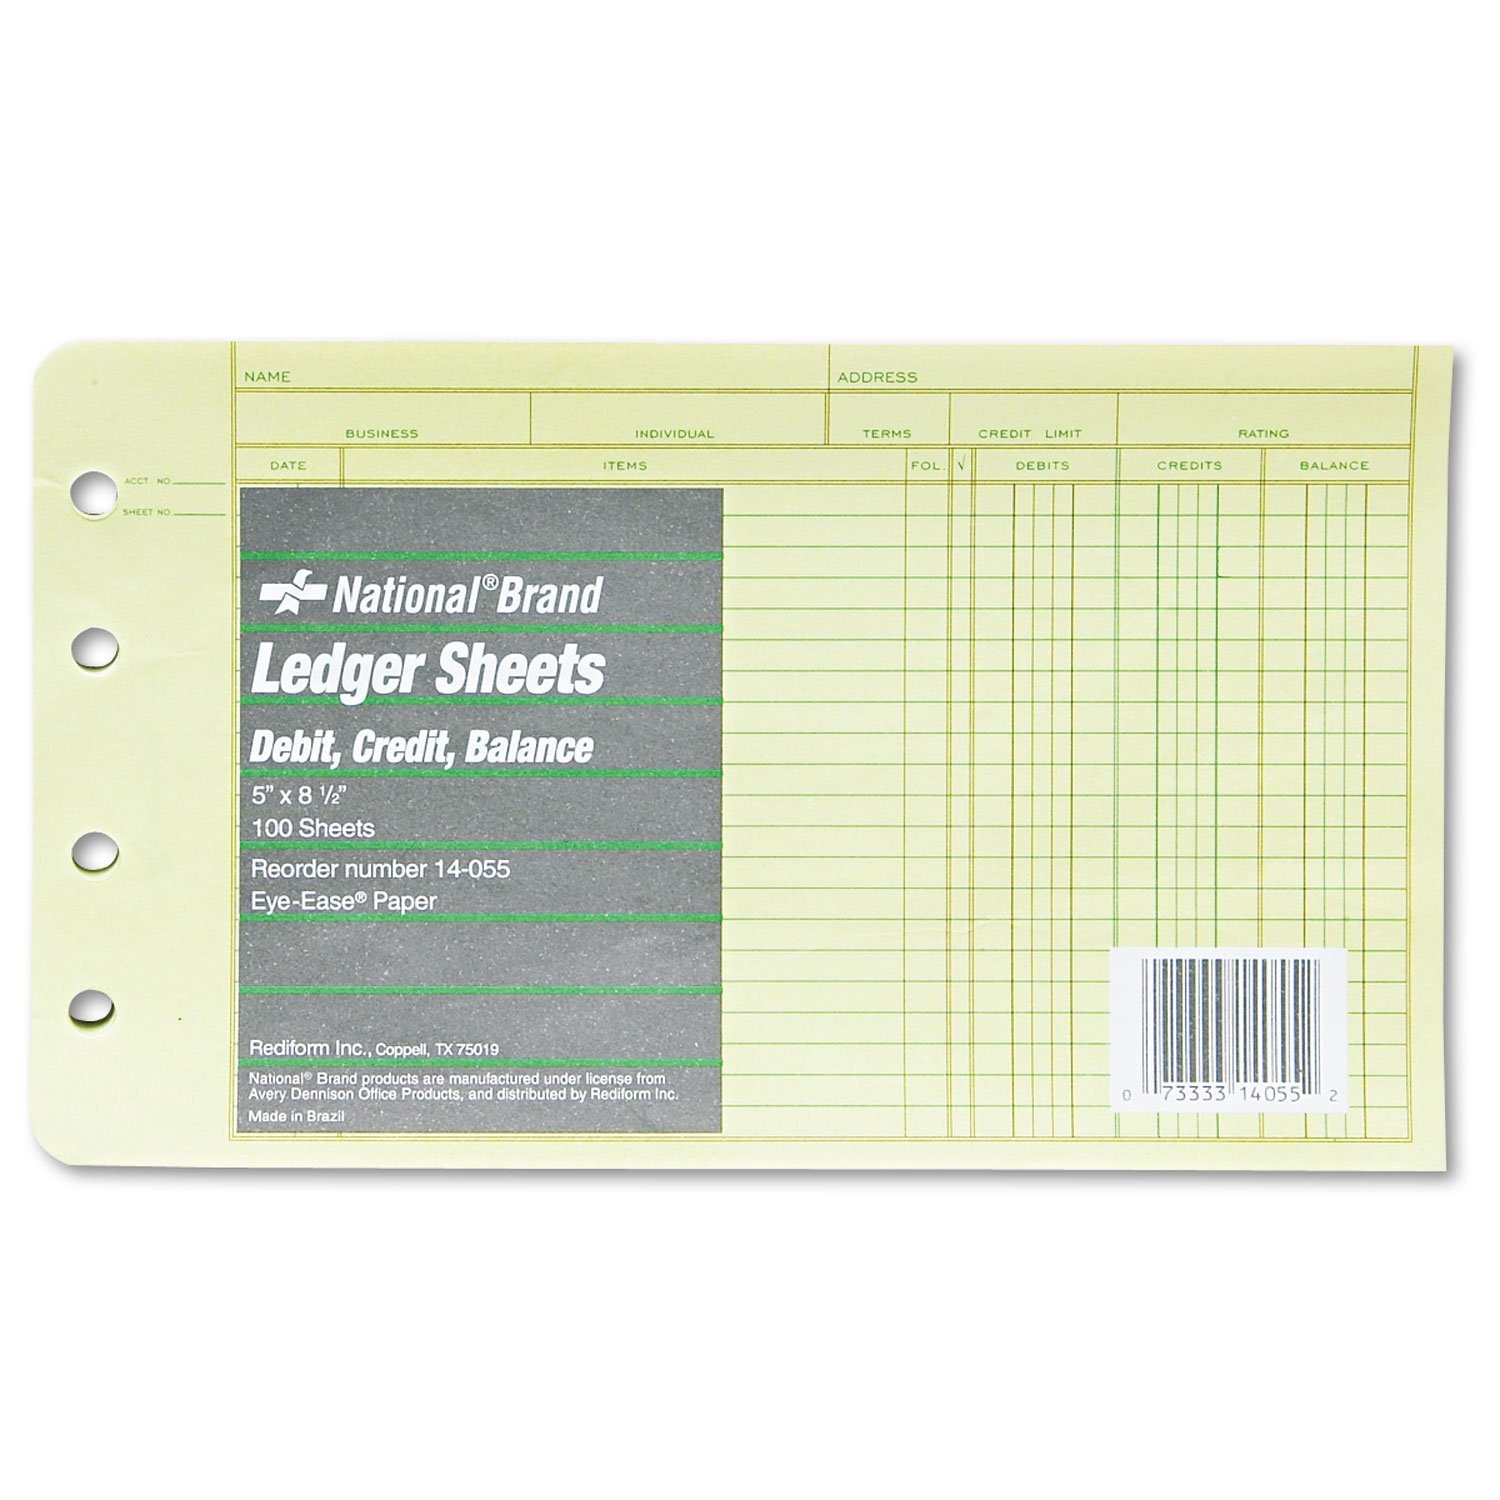 National Brand Products - National Brand - Extra Sheets for 4-Ring Ledger Binder, 8-1/2 x 5-1/2, 100/Pack - Sold As 1 Pack - Designed for accounts payable and accounts receivable with debit, credit and balance columns. - Sheets promote quick and easy acco